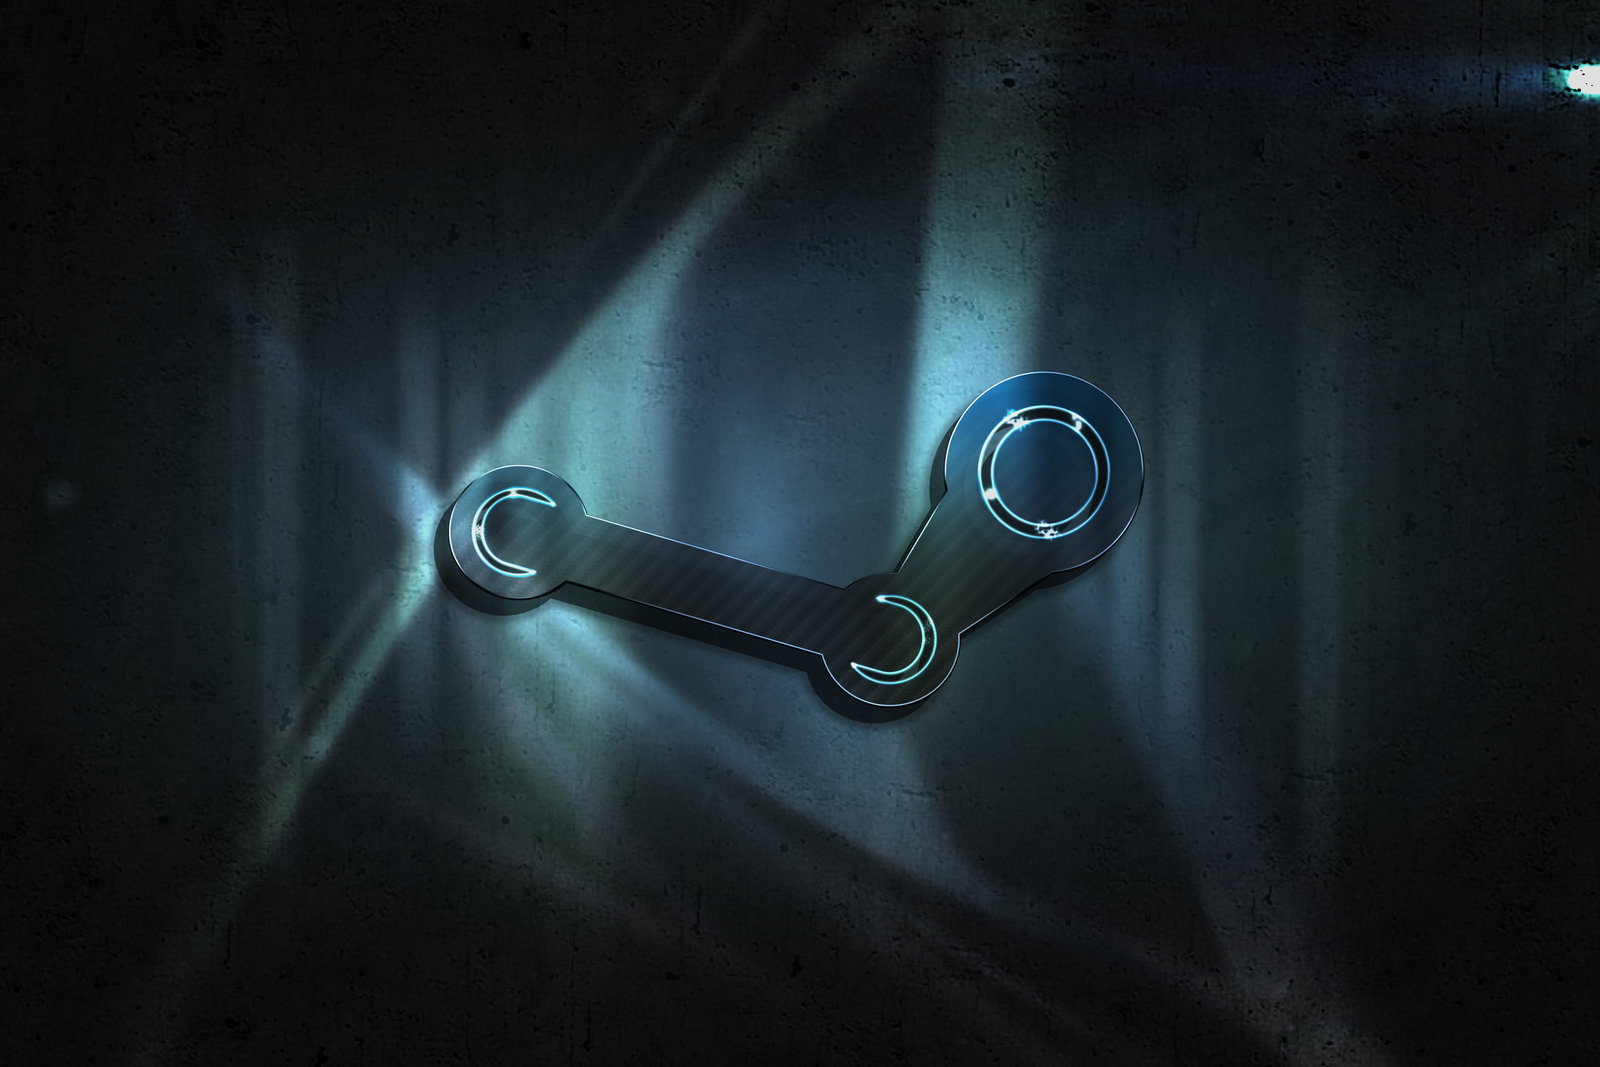 steam_gaming_wallpaper_by_kirilvelinovd9s0er0.jpg